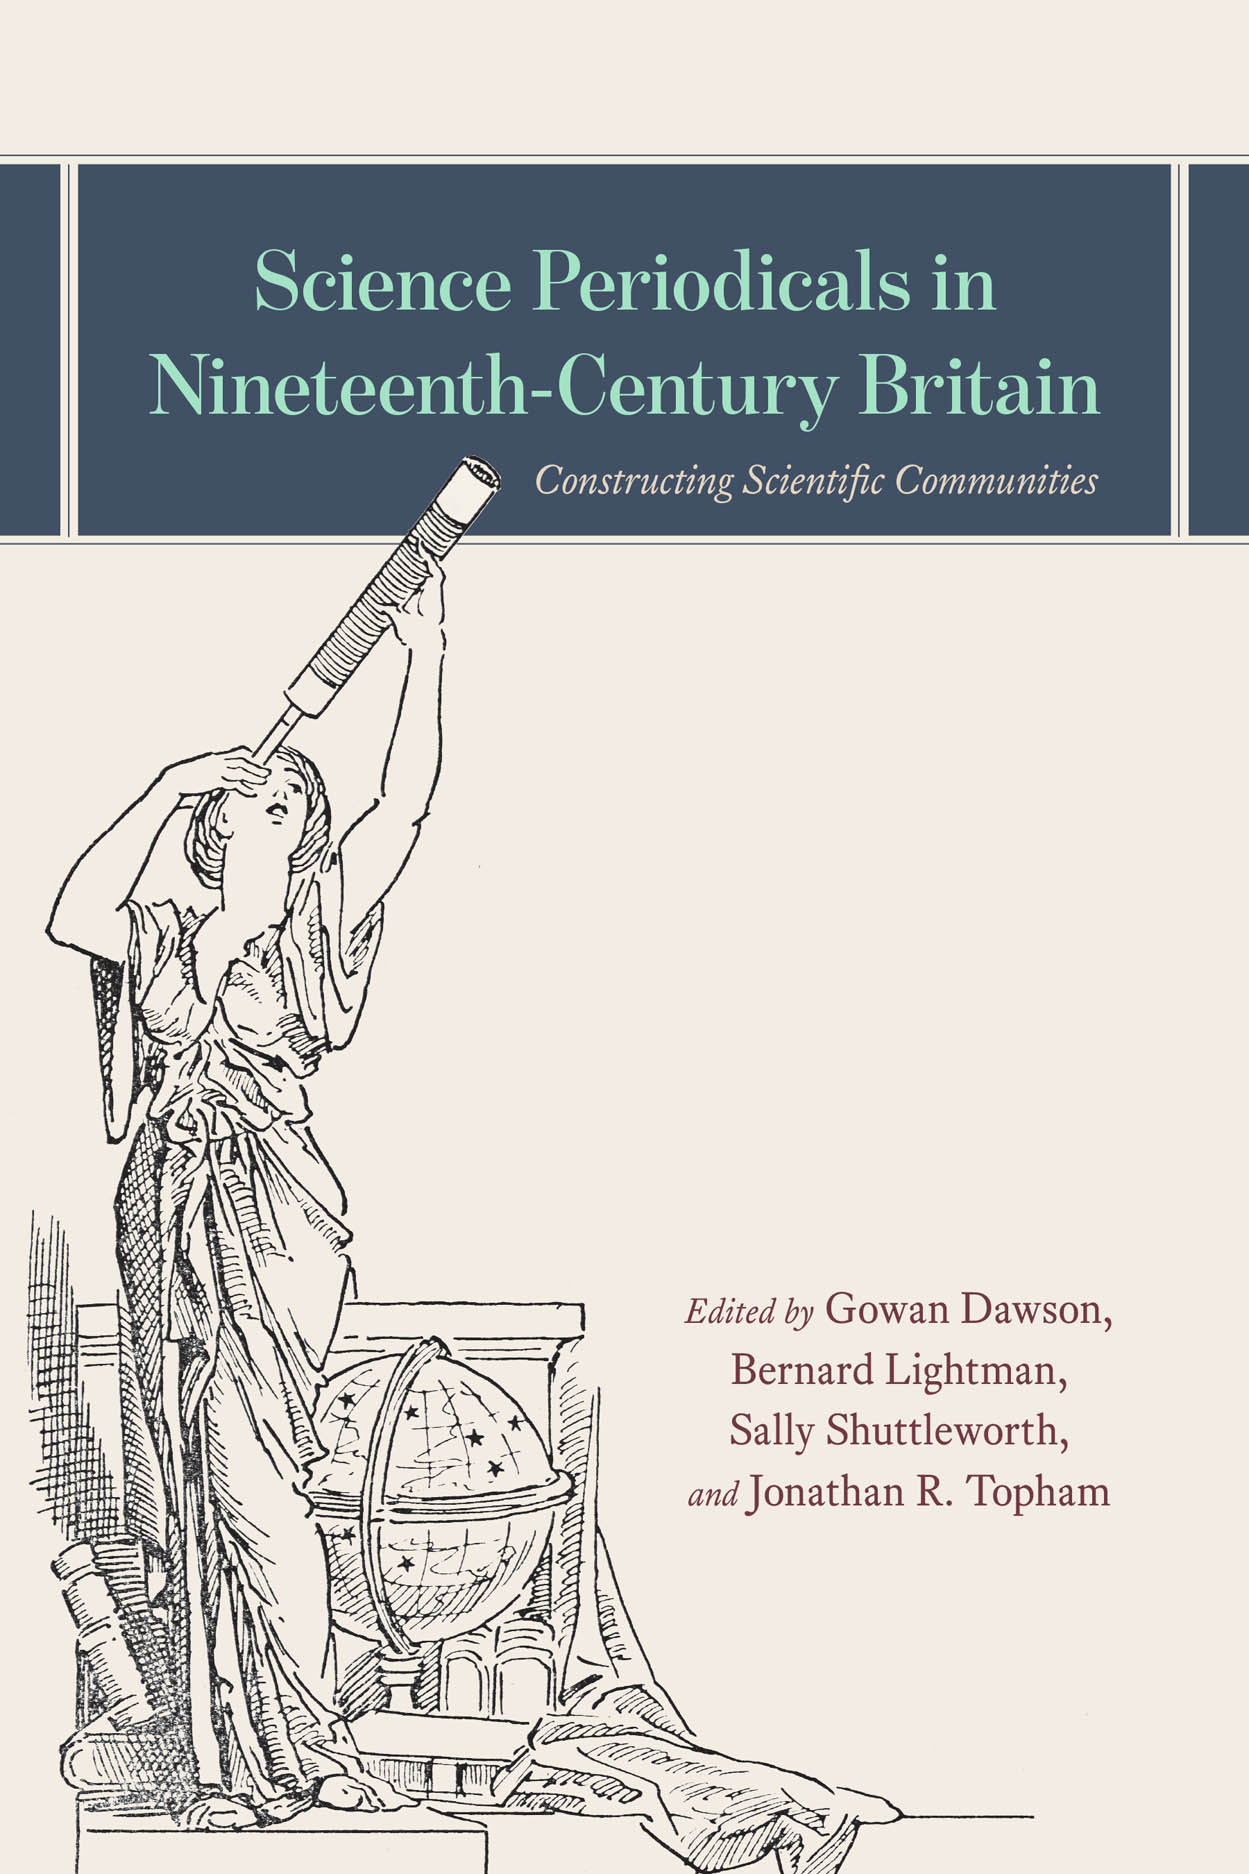 Science Periodicals in Nineteenth-Century Britain: Constructing Scientific Communities